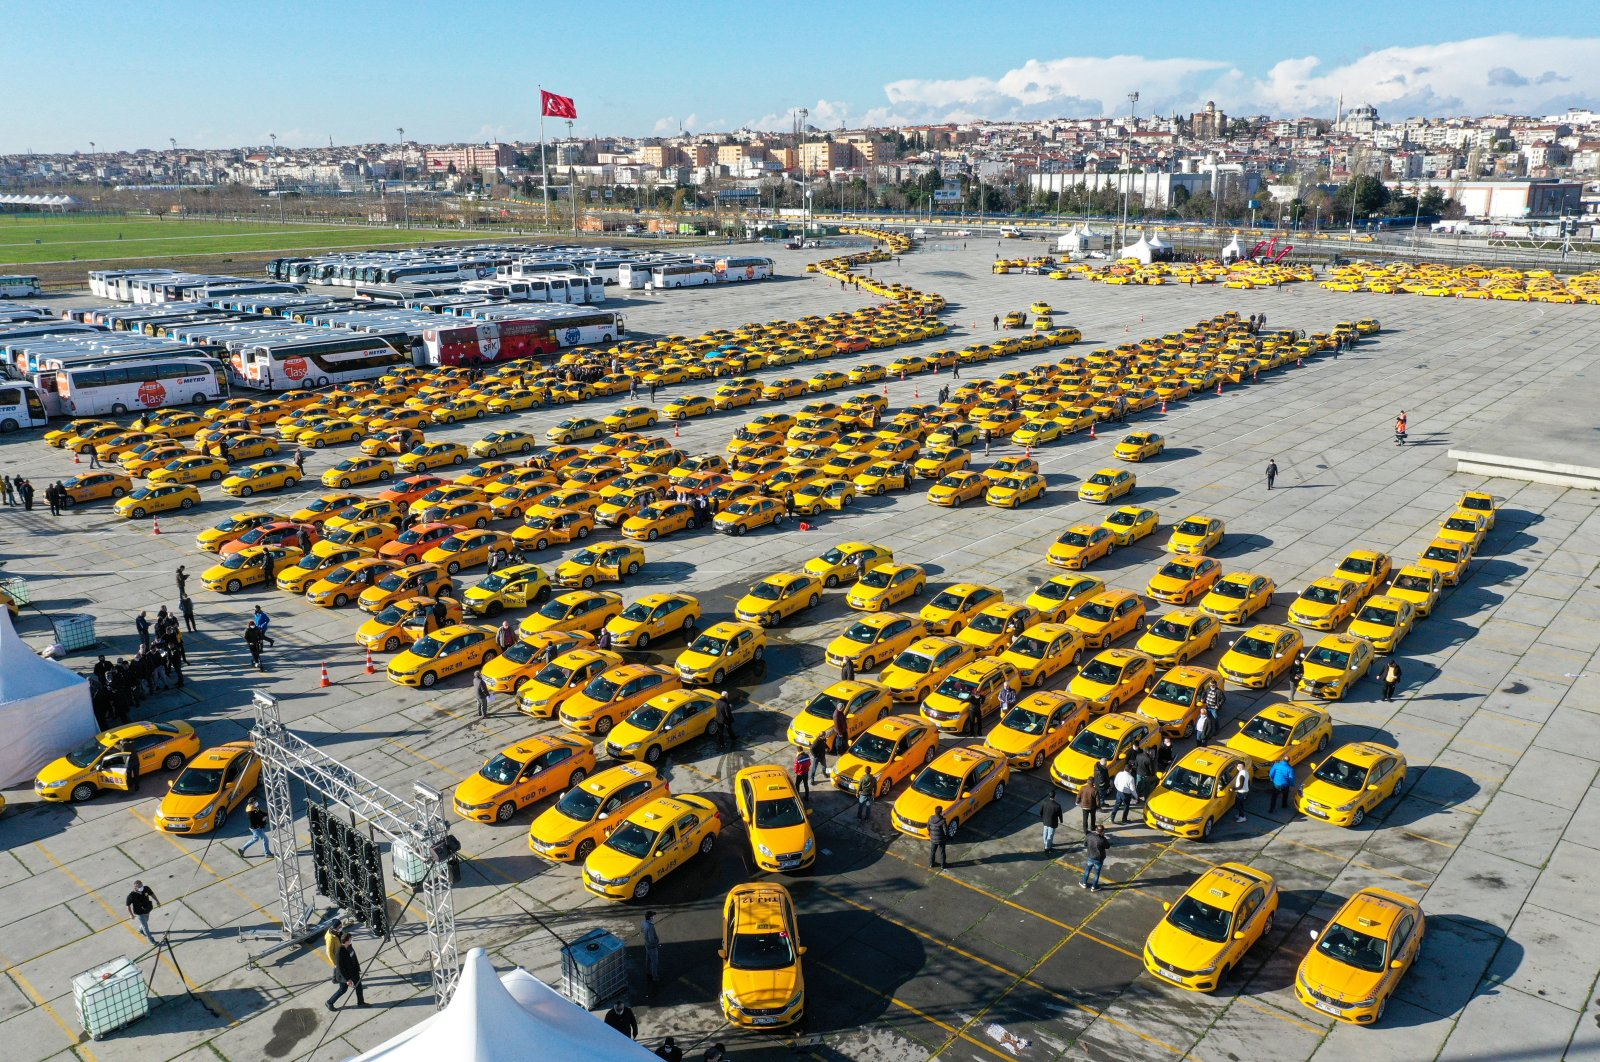 Taxis at a square in Yenikapı district, in Istanbul, Turkey, Jan. 2, 2021. (AA PHOTO)